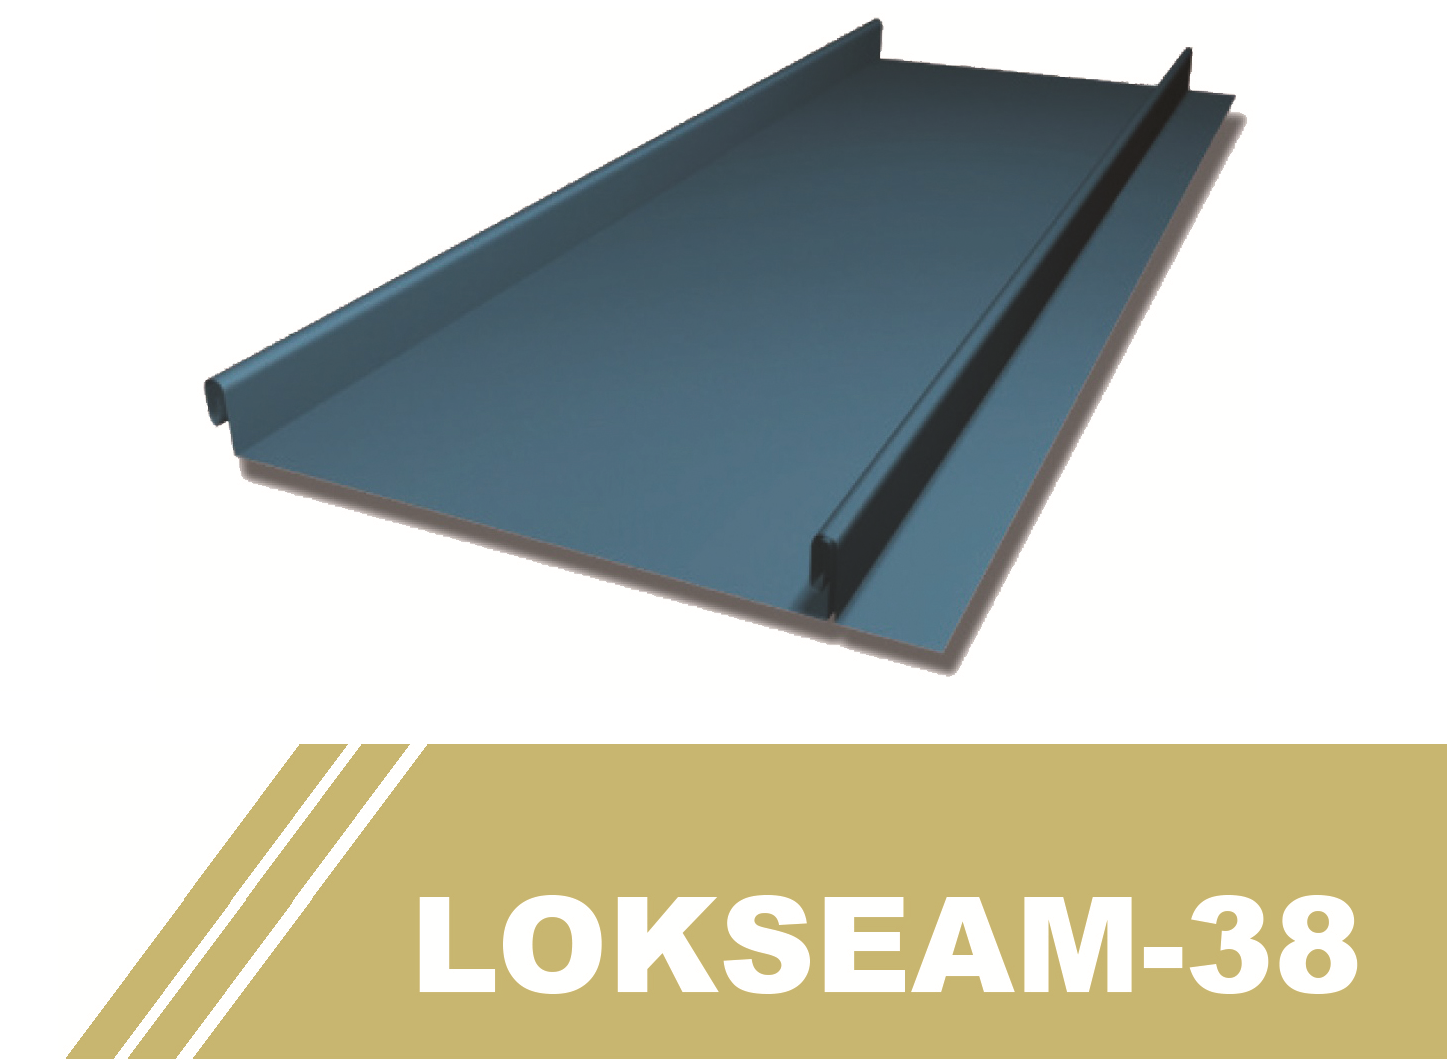 Lokseam-38